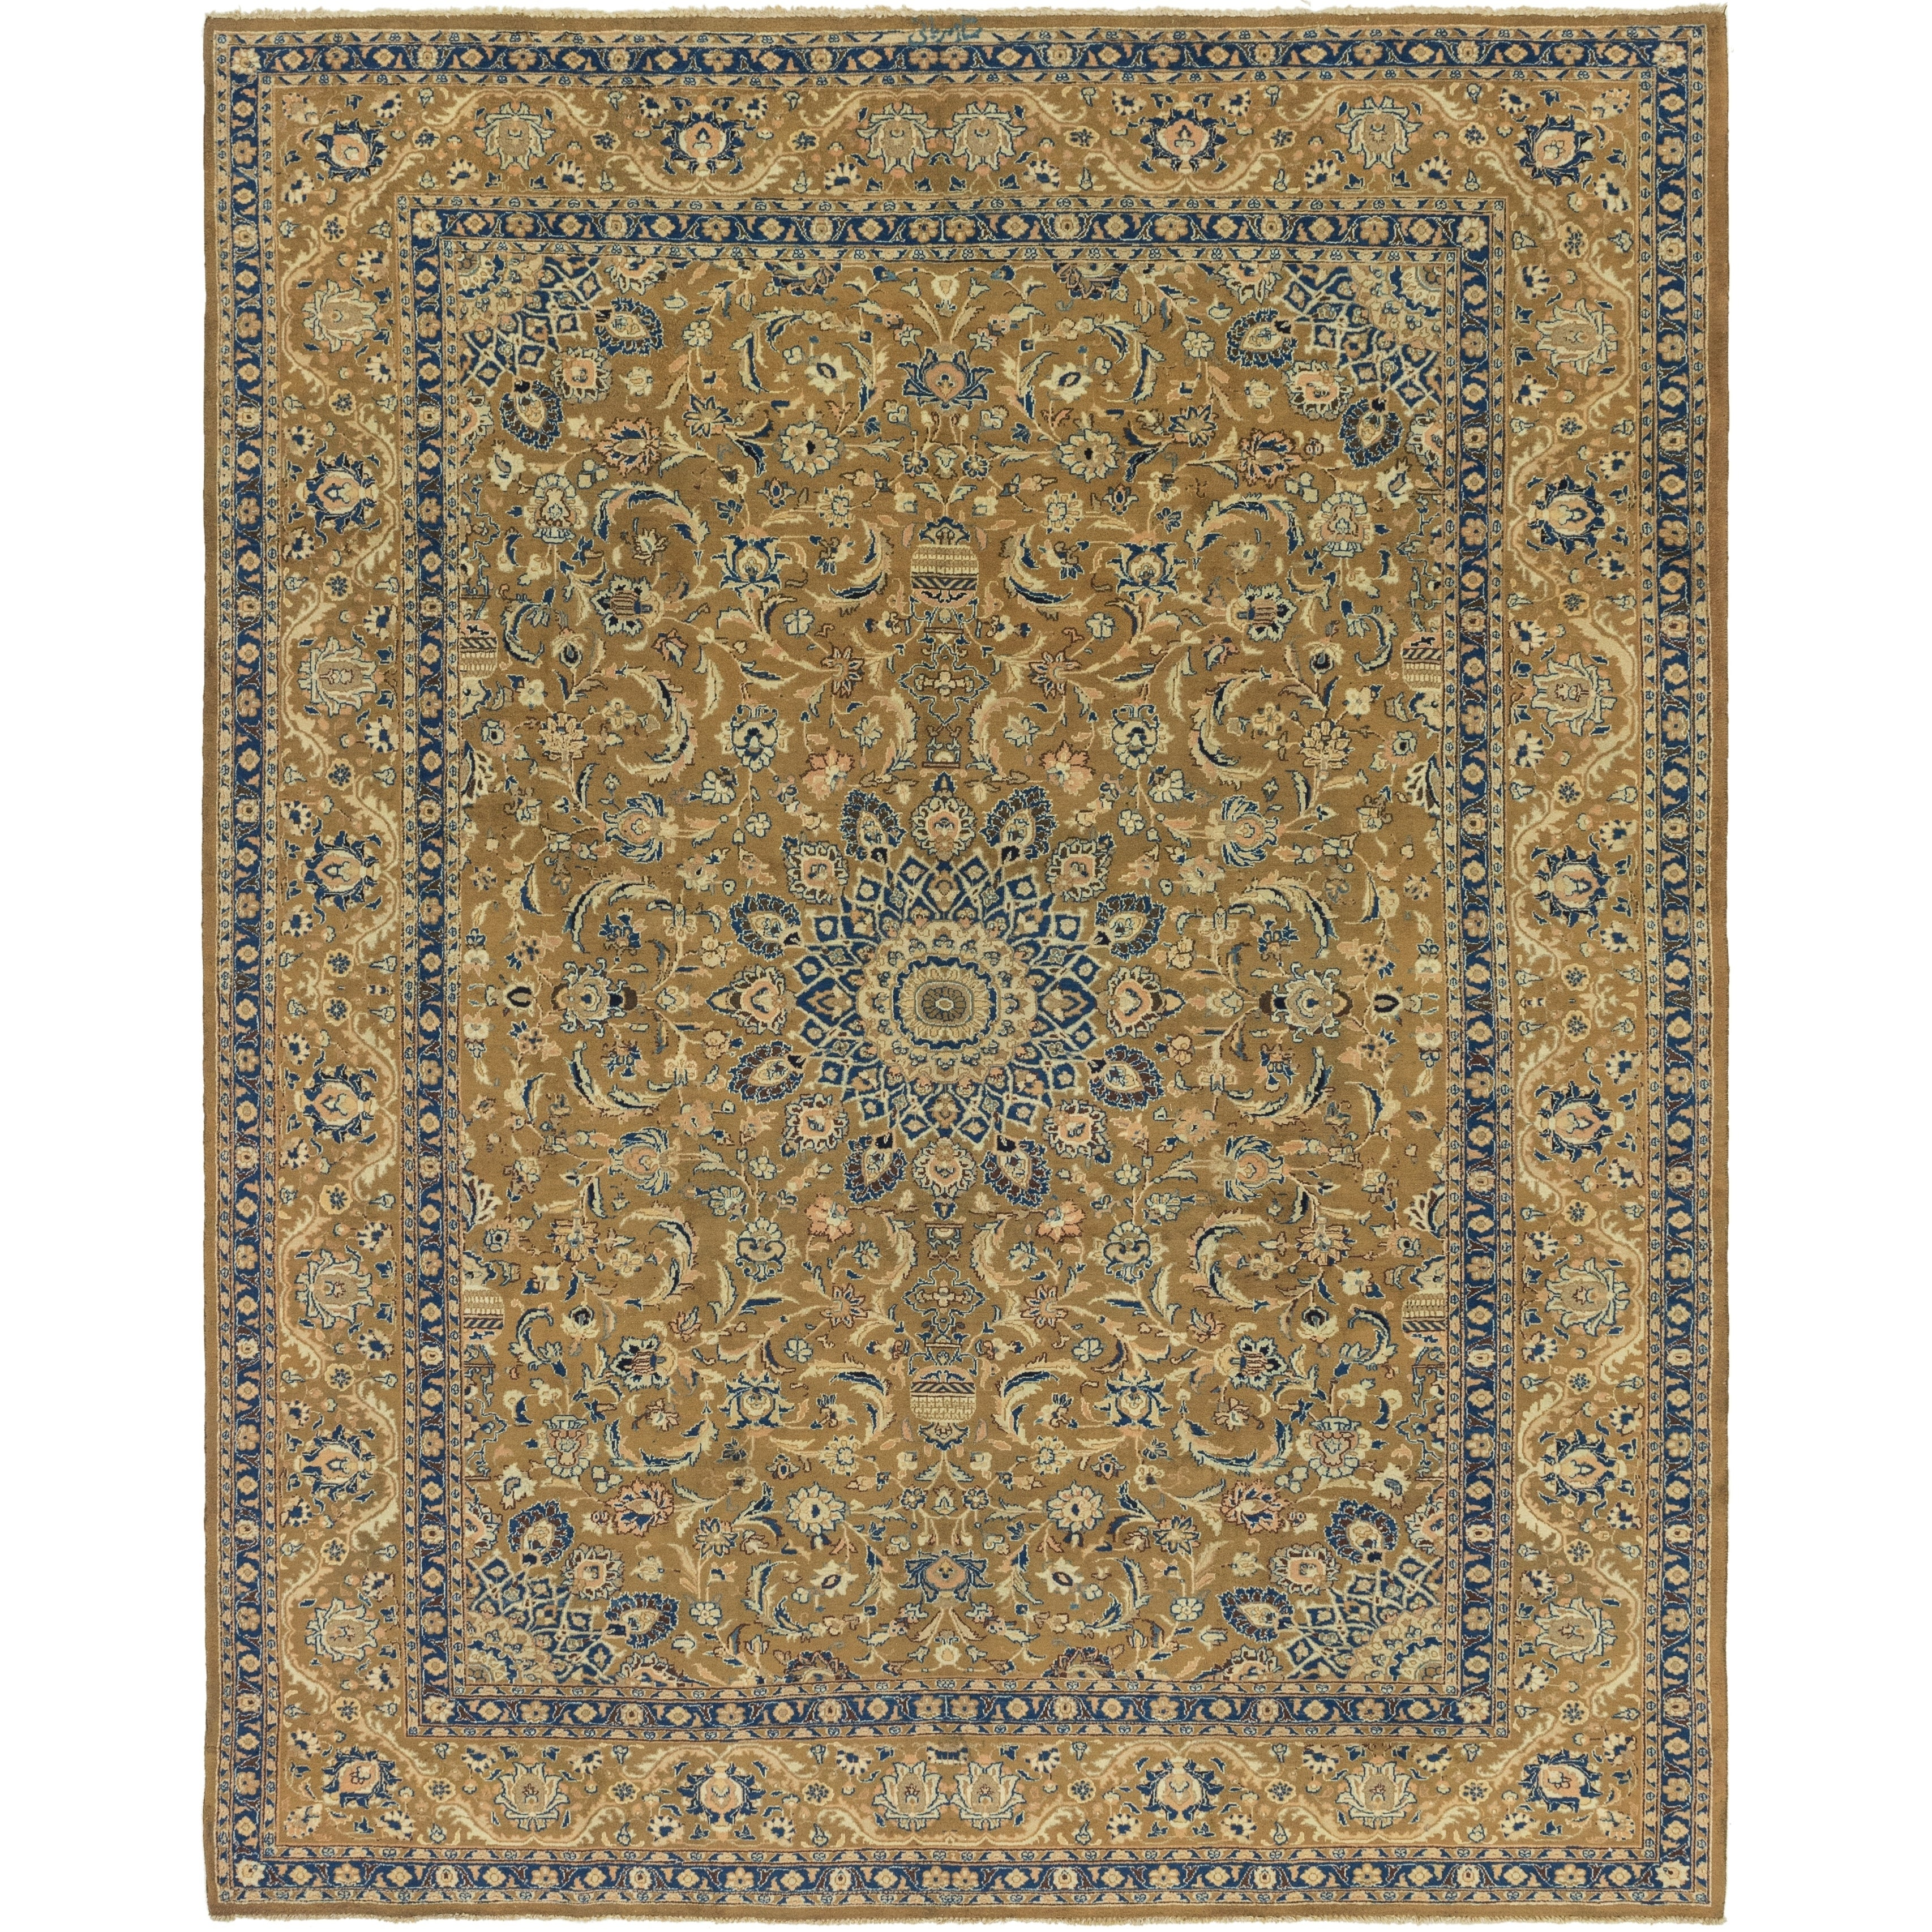 Hand Knotted Kashmar Semi Antique Wool Area Rug - 9 9 x 12 5 (Olive - 9 9 x 12 5)